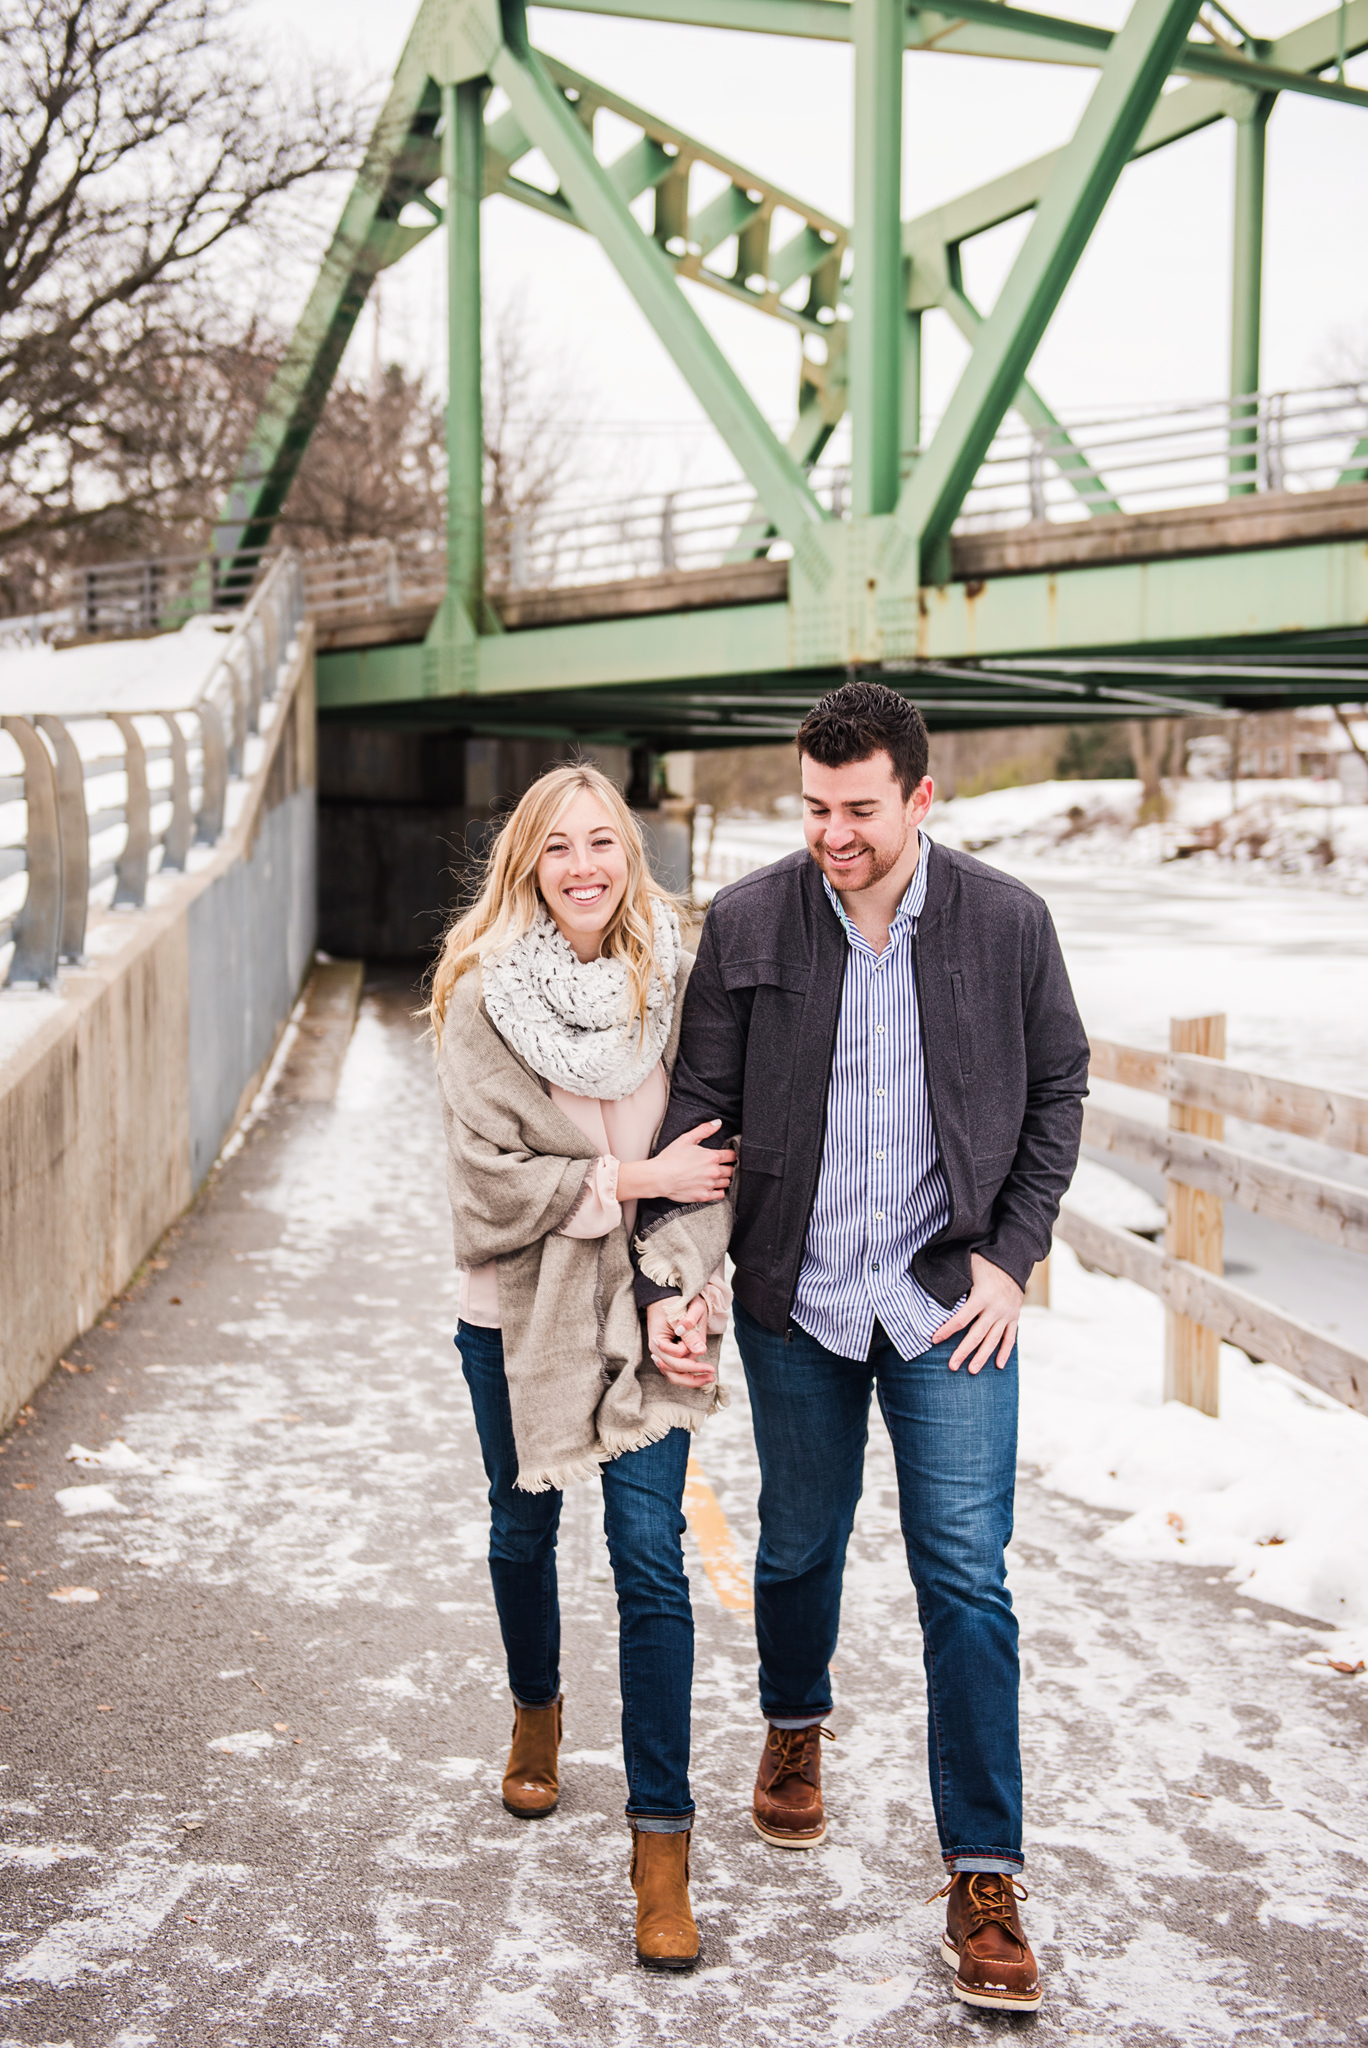 Schoen_Place_Rochester_Engagement_Session_JILL_STUDIO_Rochester_NY_Photographer_DSC_1270.jpg